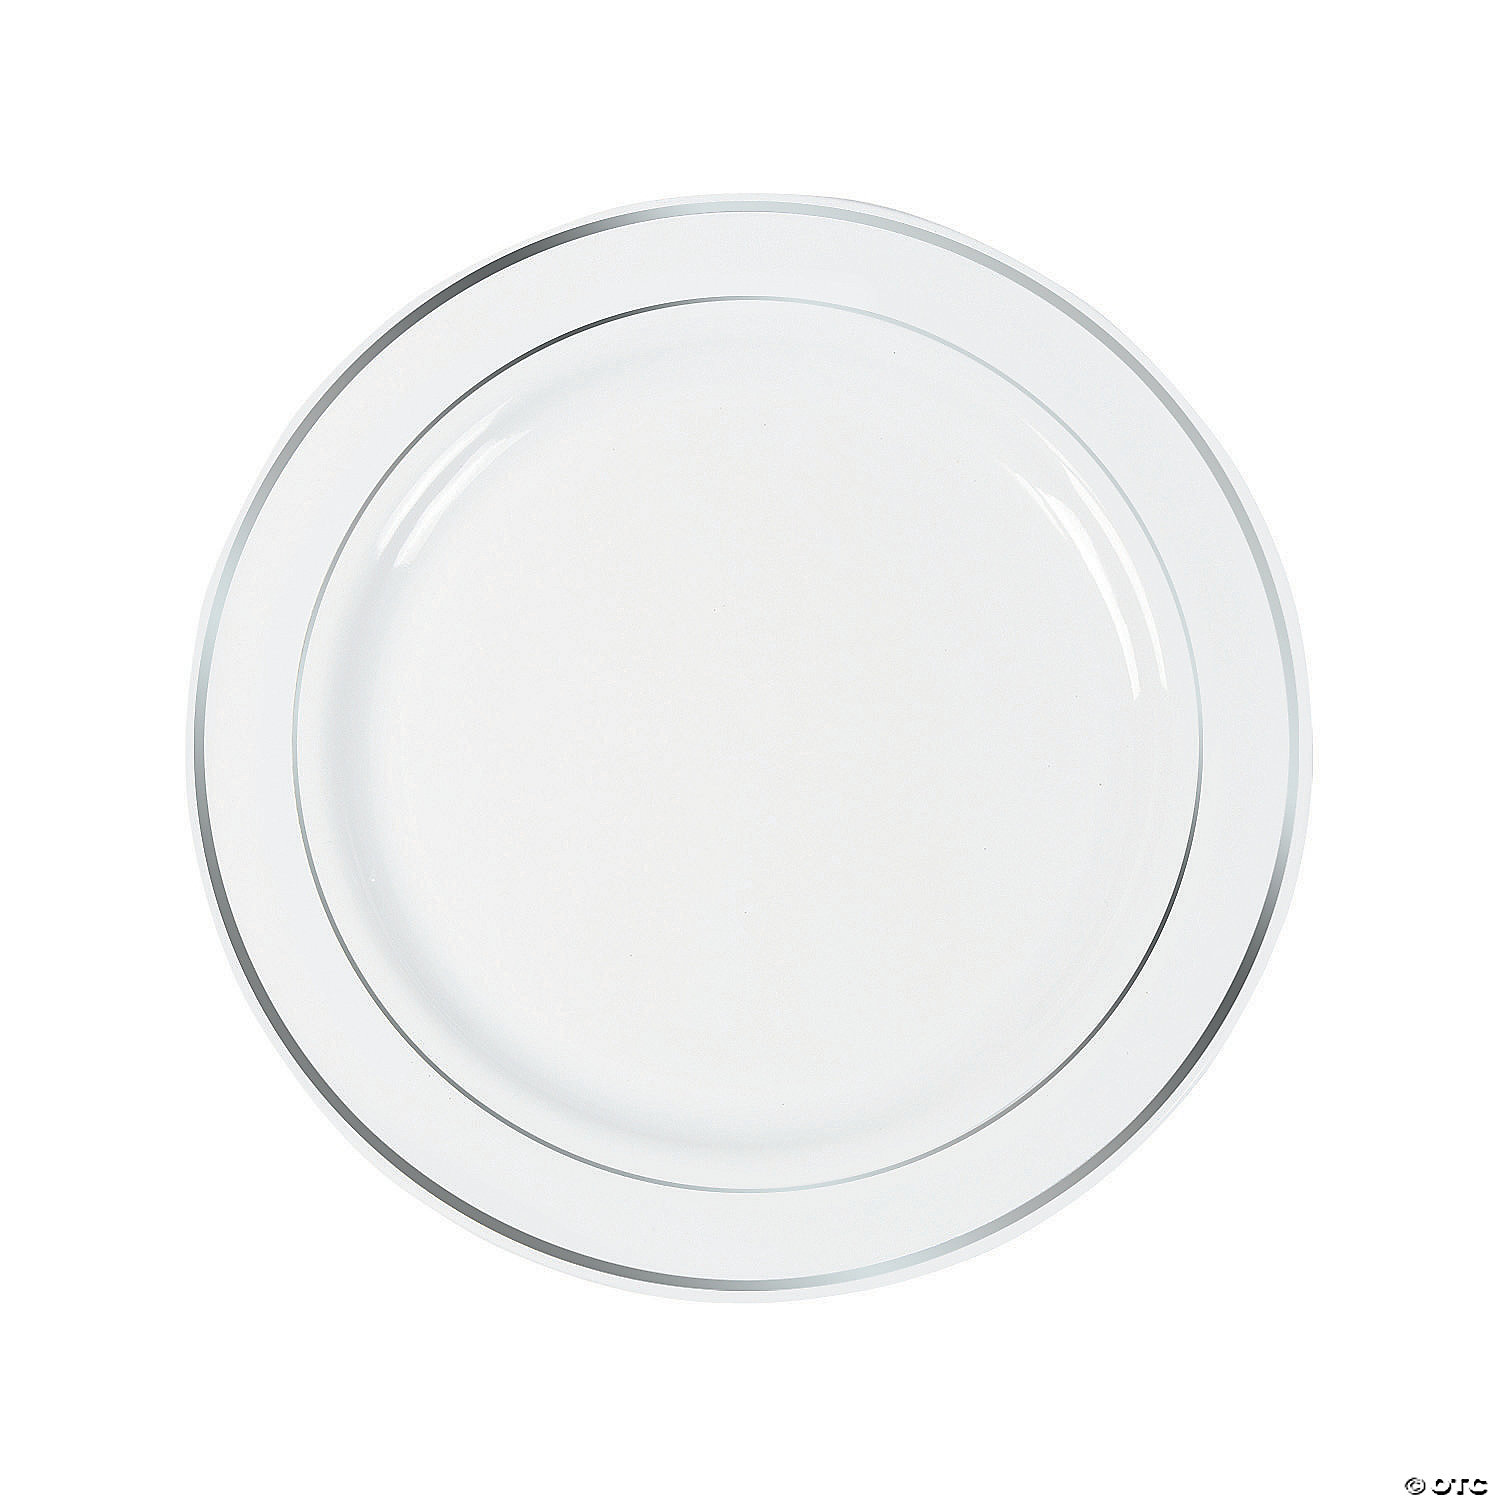 white-premium-plastic-dinner-plates-with-silver-trim ...  sc 1 st  Oriental Trading & White Premium Plastic Dinner Plates with Silver Trim